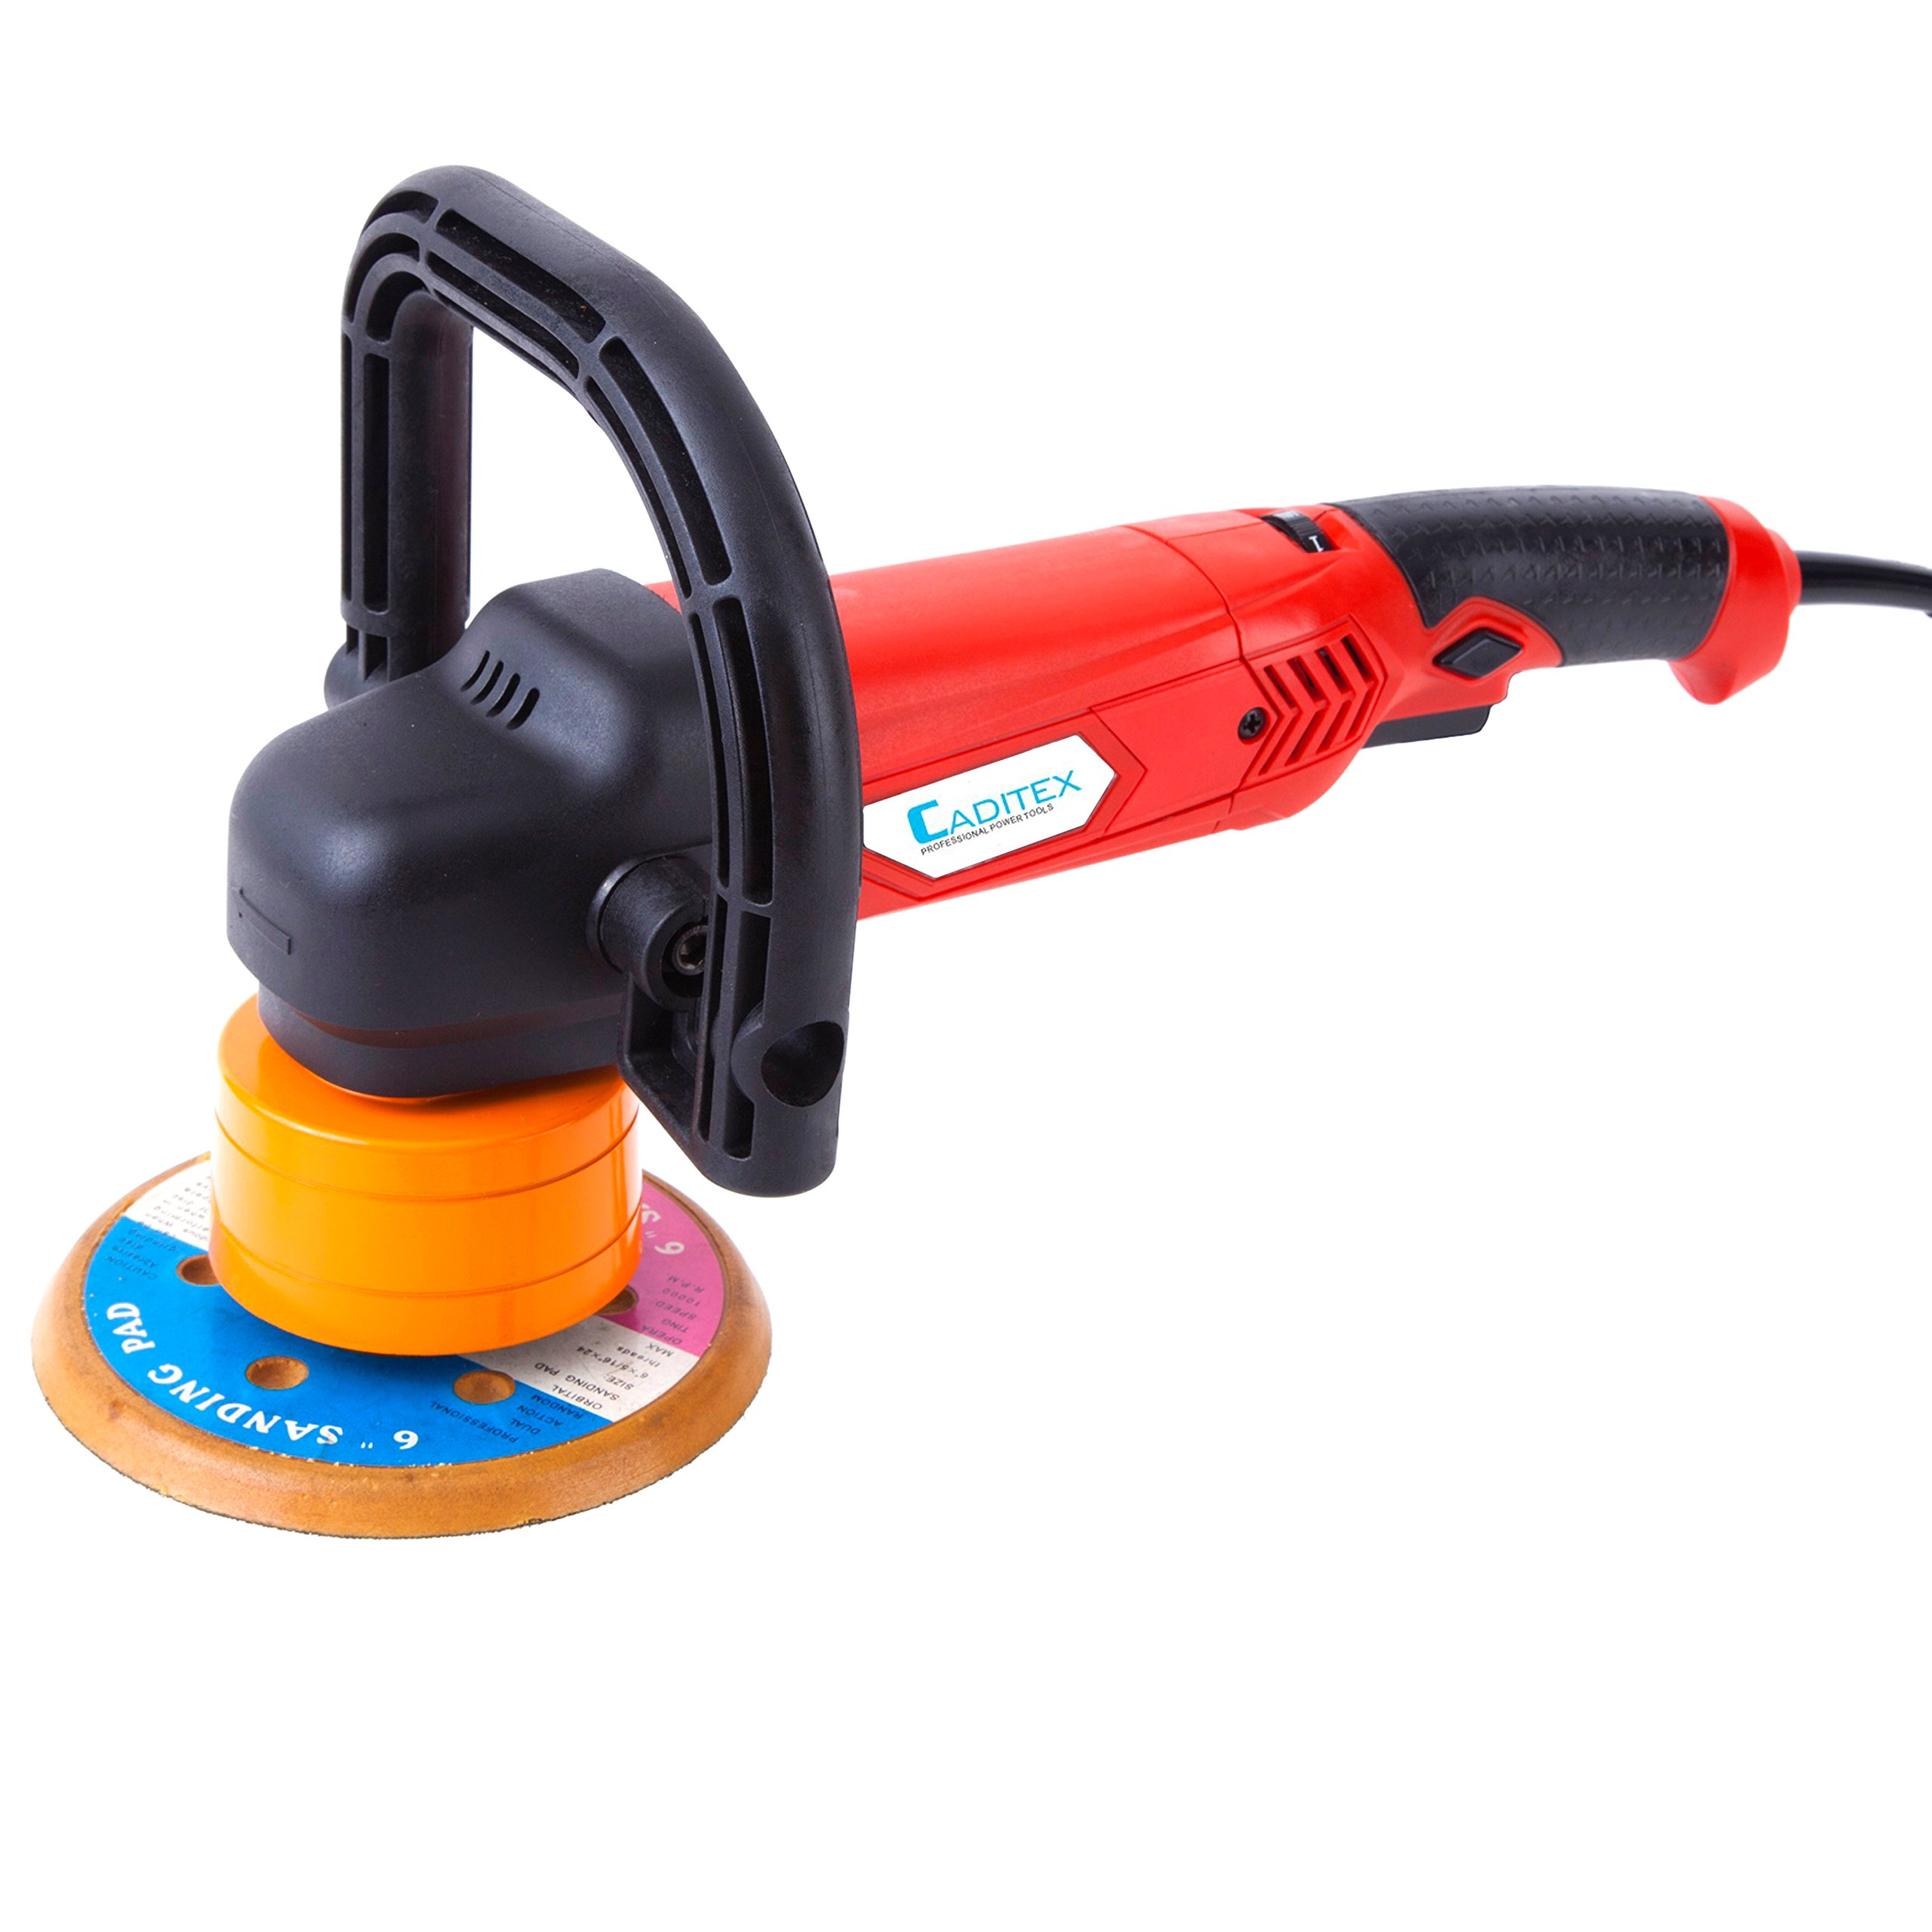 CADITEX Brand 7.5-Amp 5-inch Random Orbit Polisher with 1 Parabolic Disc, 1 Sponge Tray, 1''D'' Handle and 1 Inner Hexagon Spanner